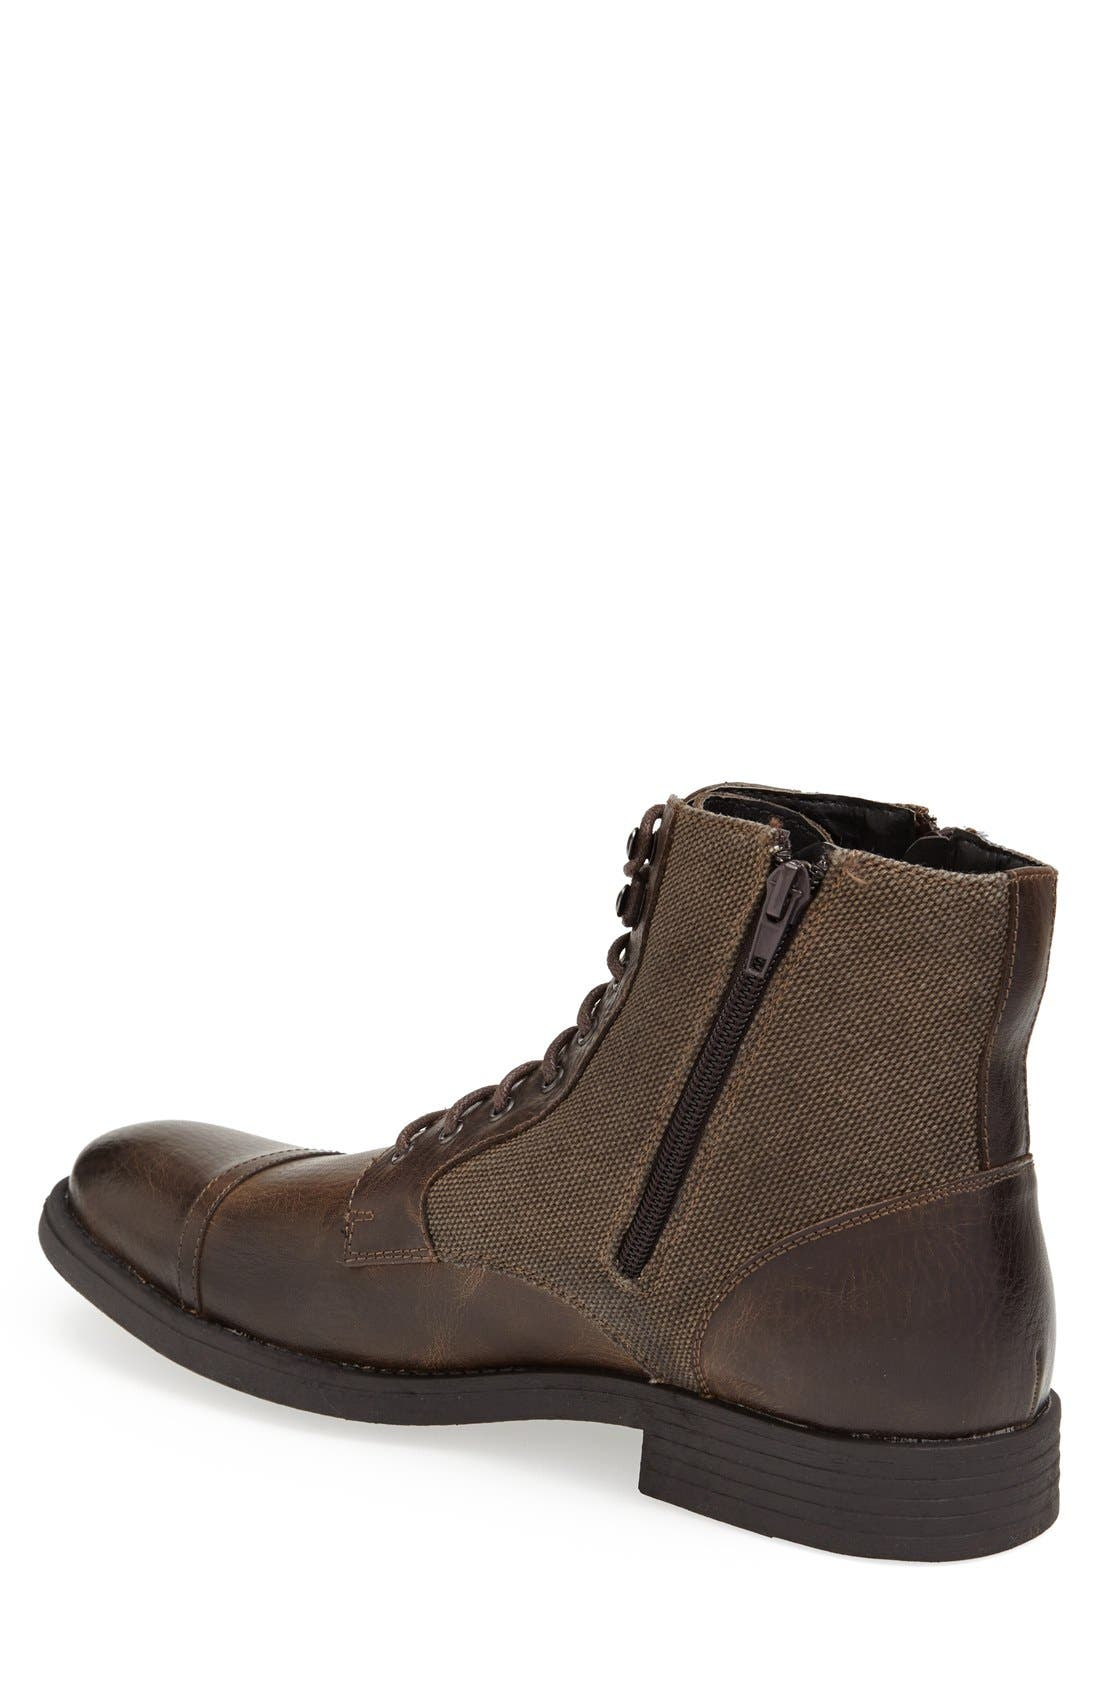 'Edgar' Cap Toe Boot,                             Alternate thumbnail 4, color,                             201